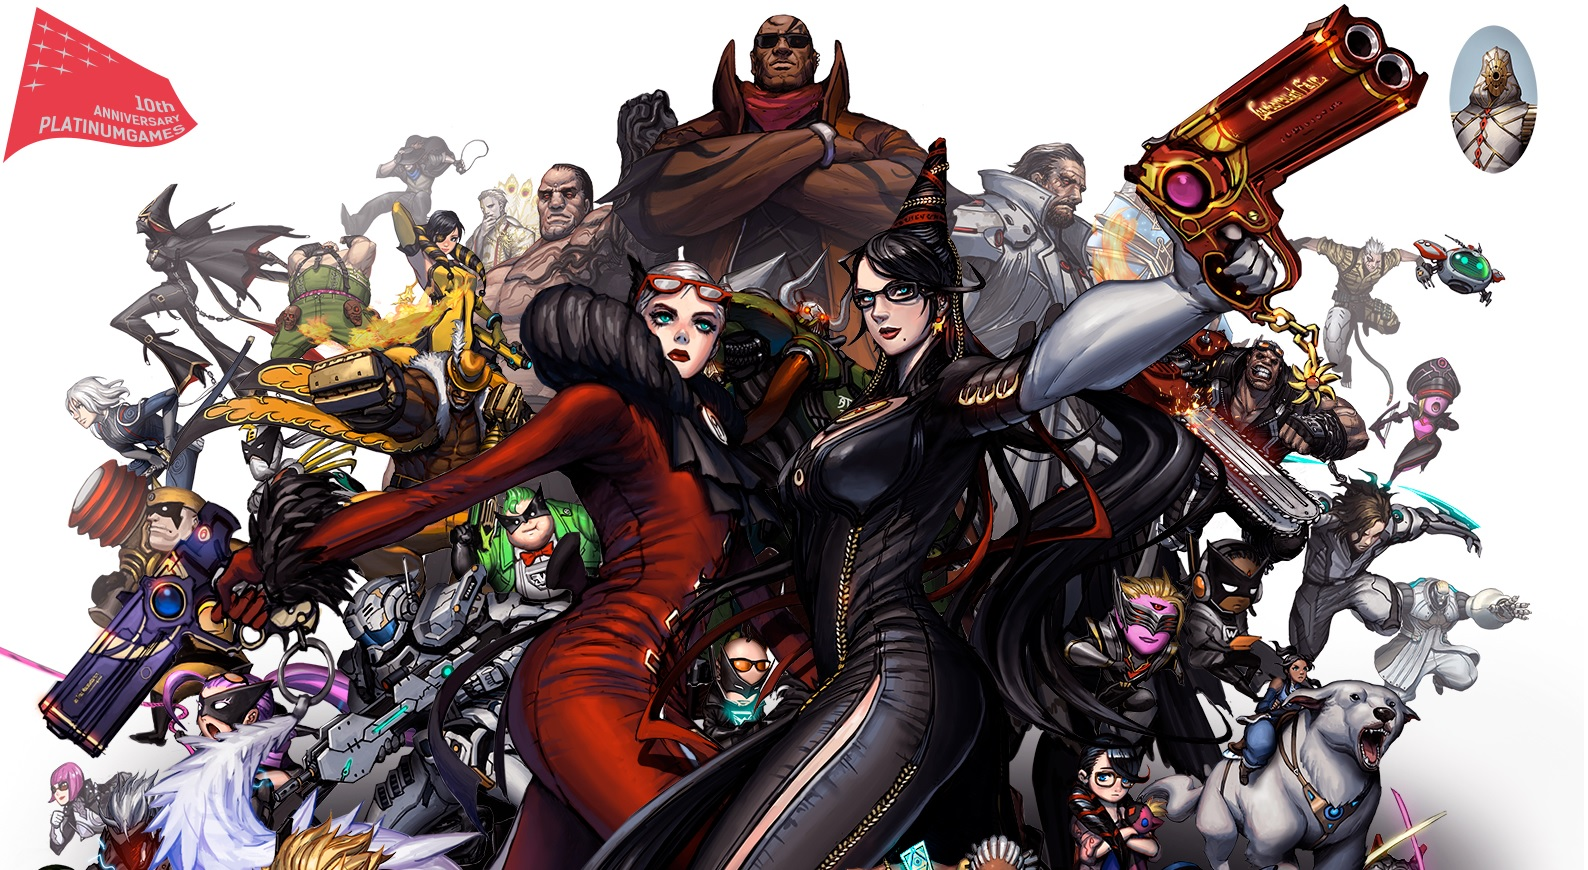 Platinum Games moving to self publishing and working on two new IPs